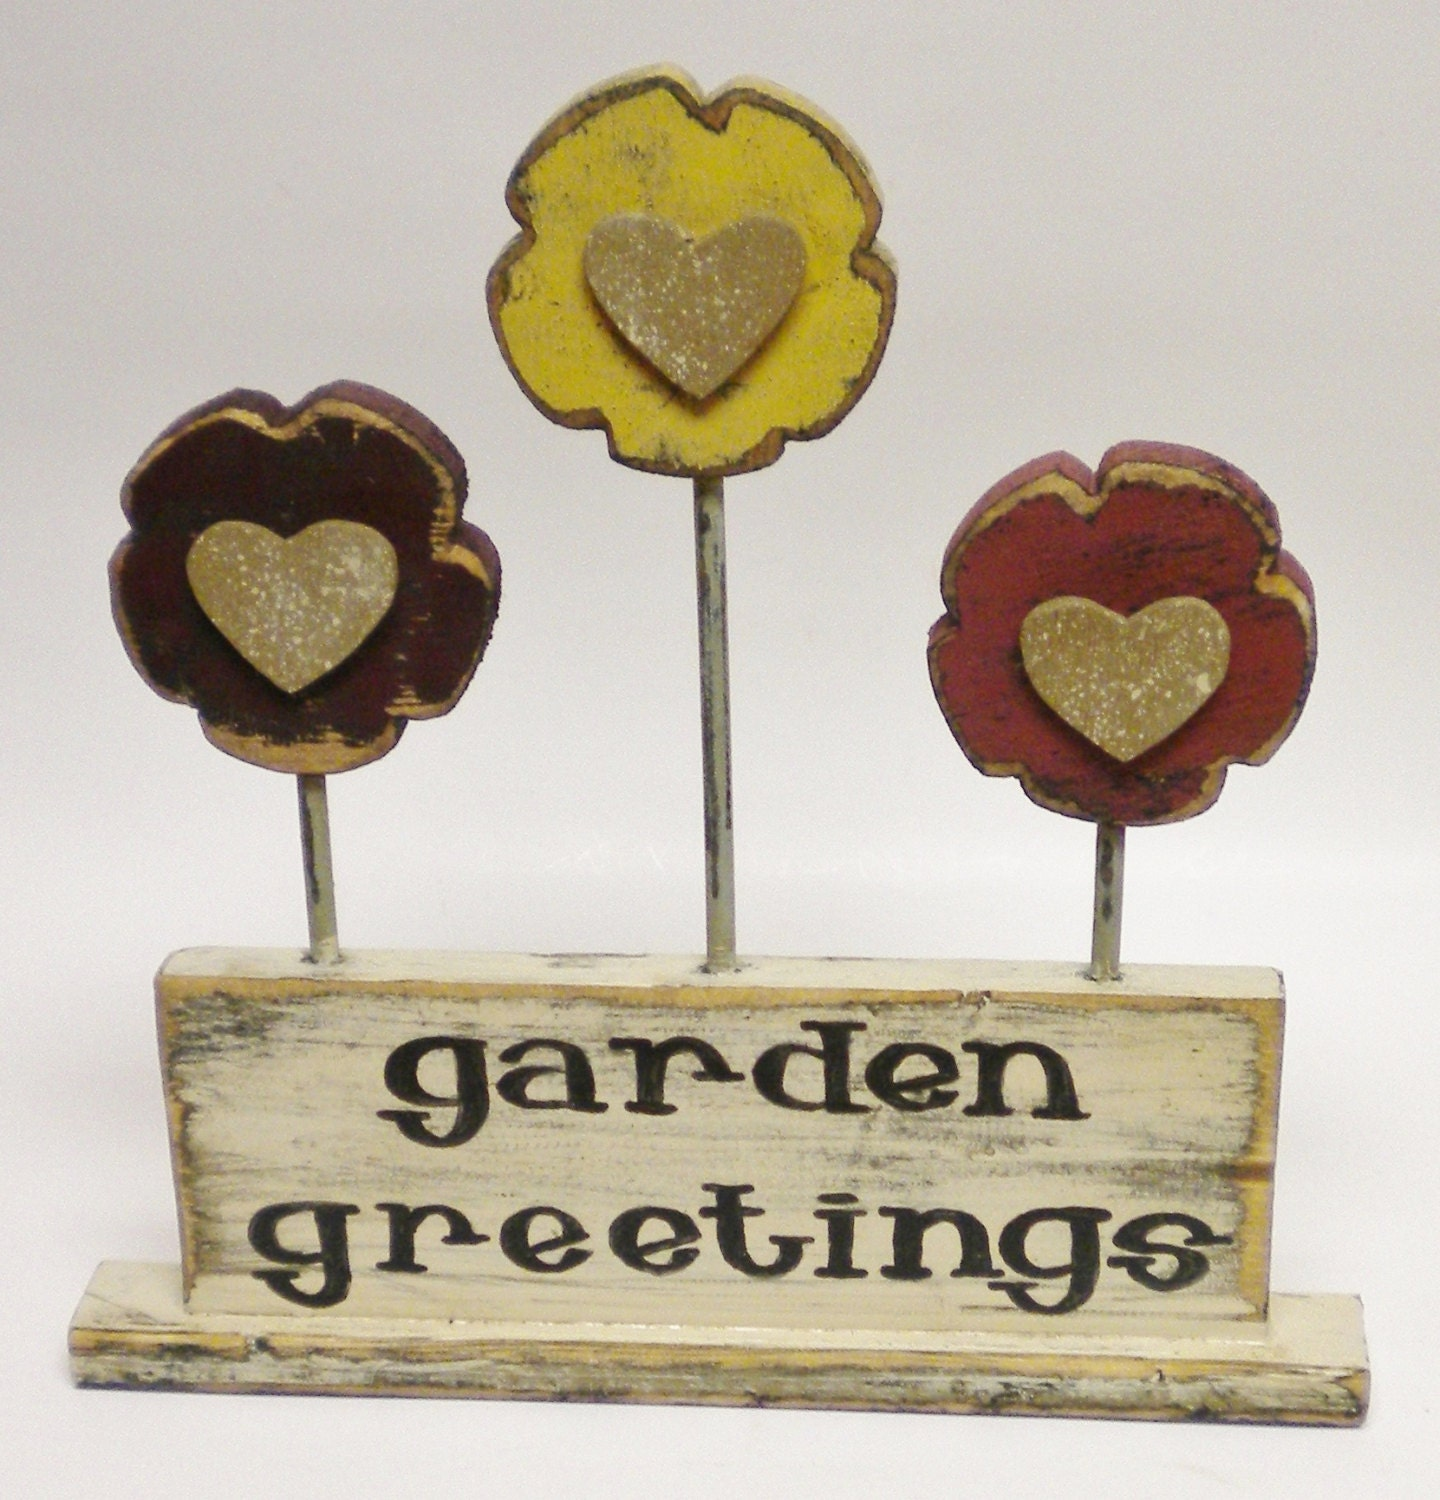 Garden greetings sign spring decor primitive accents for Outdoor decorative signs